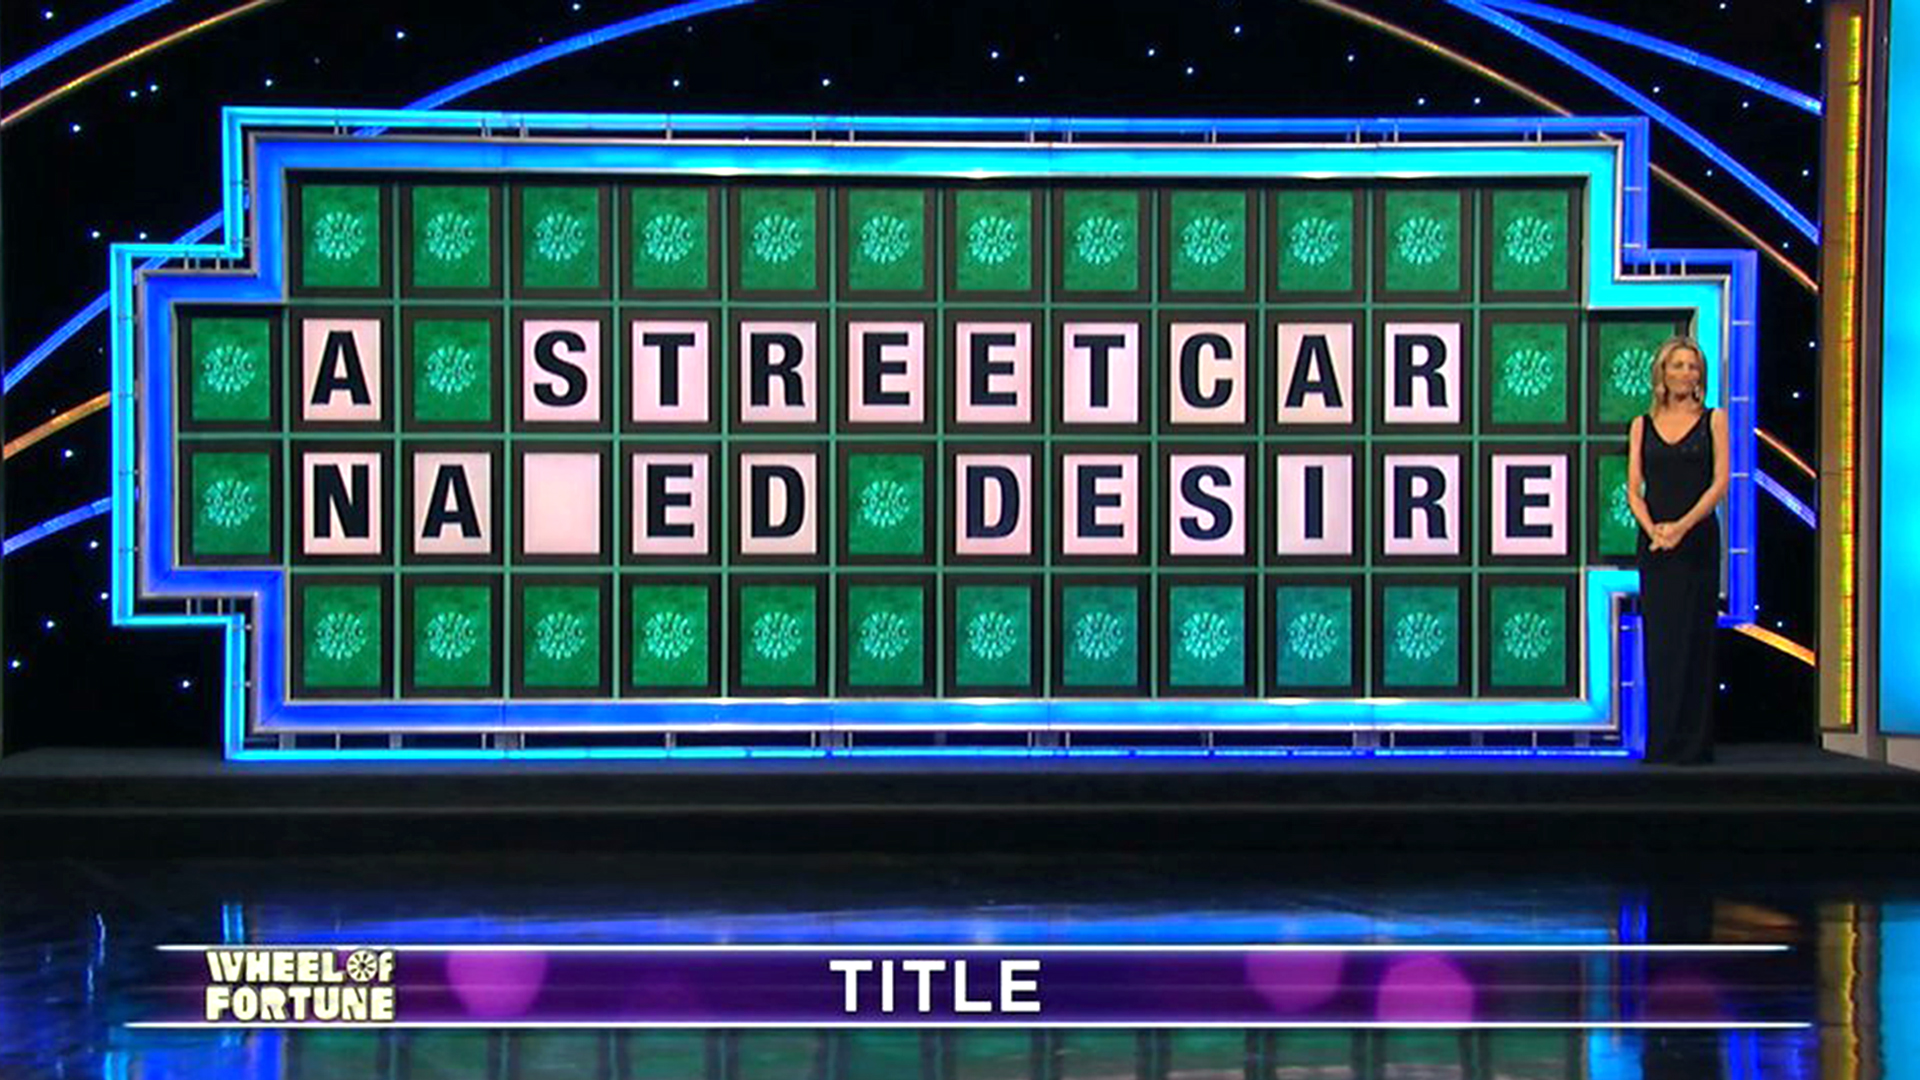 39 wheel of fortune 39 contestant 39 s 39 streetcar named desire 39 flub may be the worst of all time. Black Bedroom Furniture Sets. Home Design Ideas